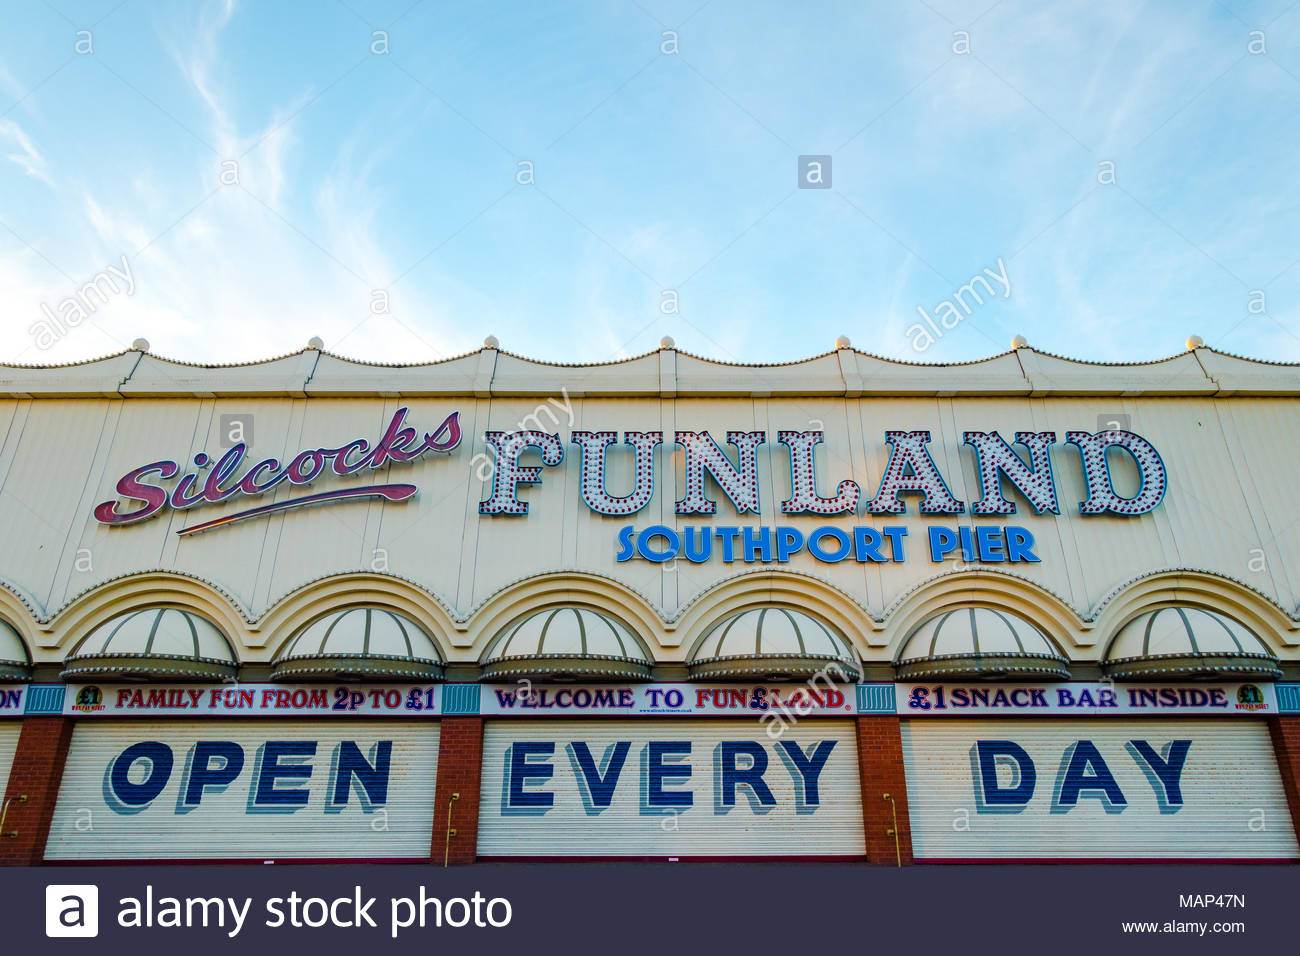 Slicocks Funland on Southport Pier the family run amusement arcade which is open every day, photo of the exterior showing it closed, close to 6 pm Stock Photo